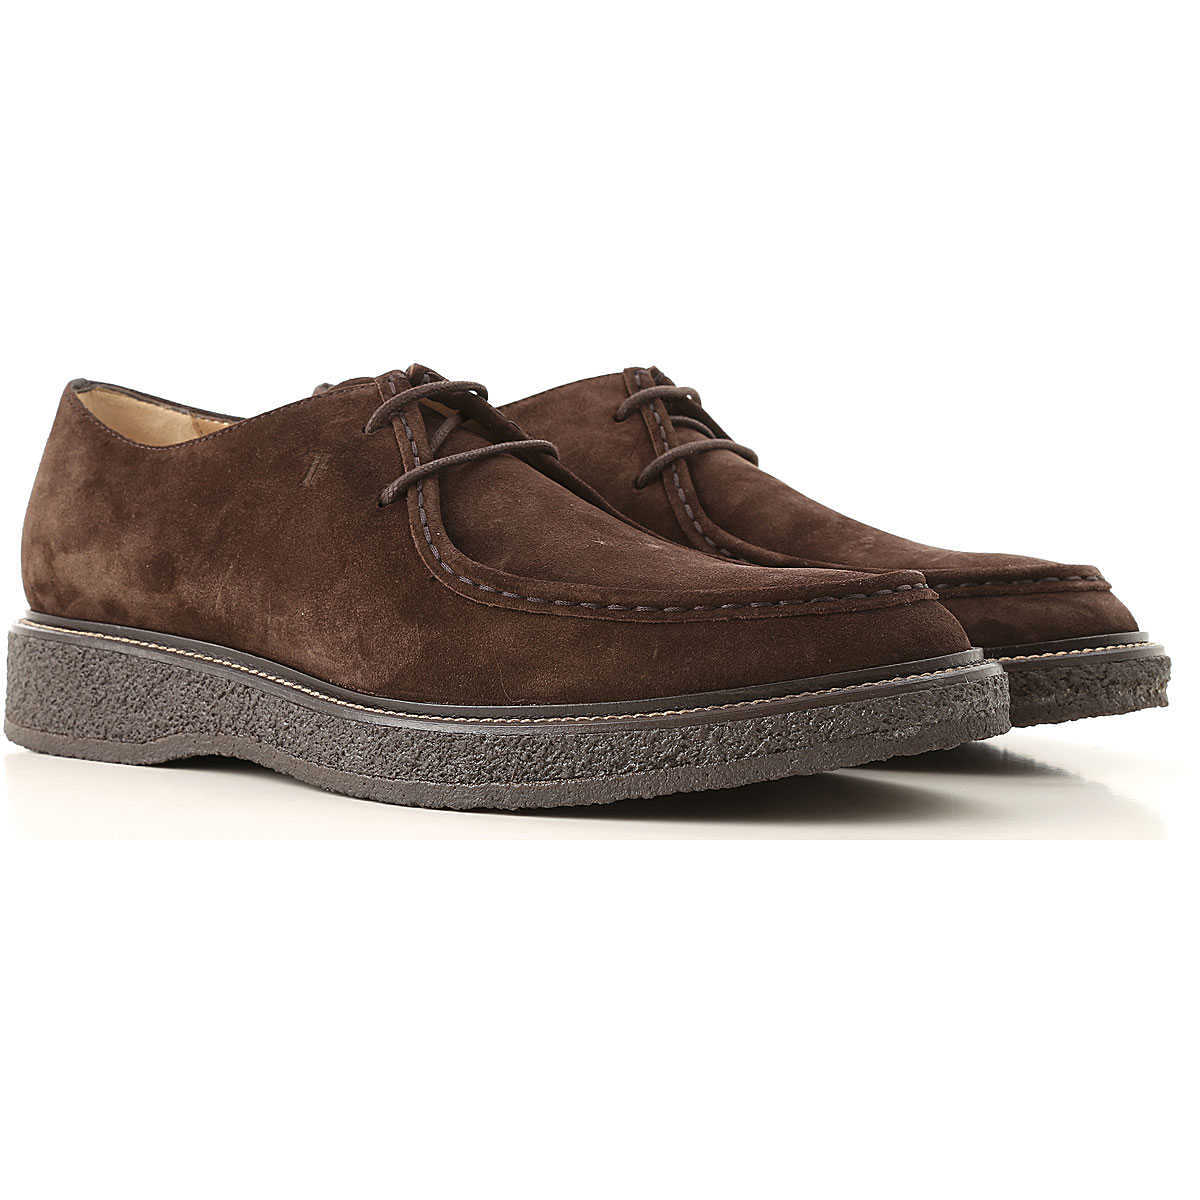 Tods Oxford Shoes for Men On Sale in Outlet Brown UK - GOOFASH